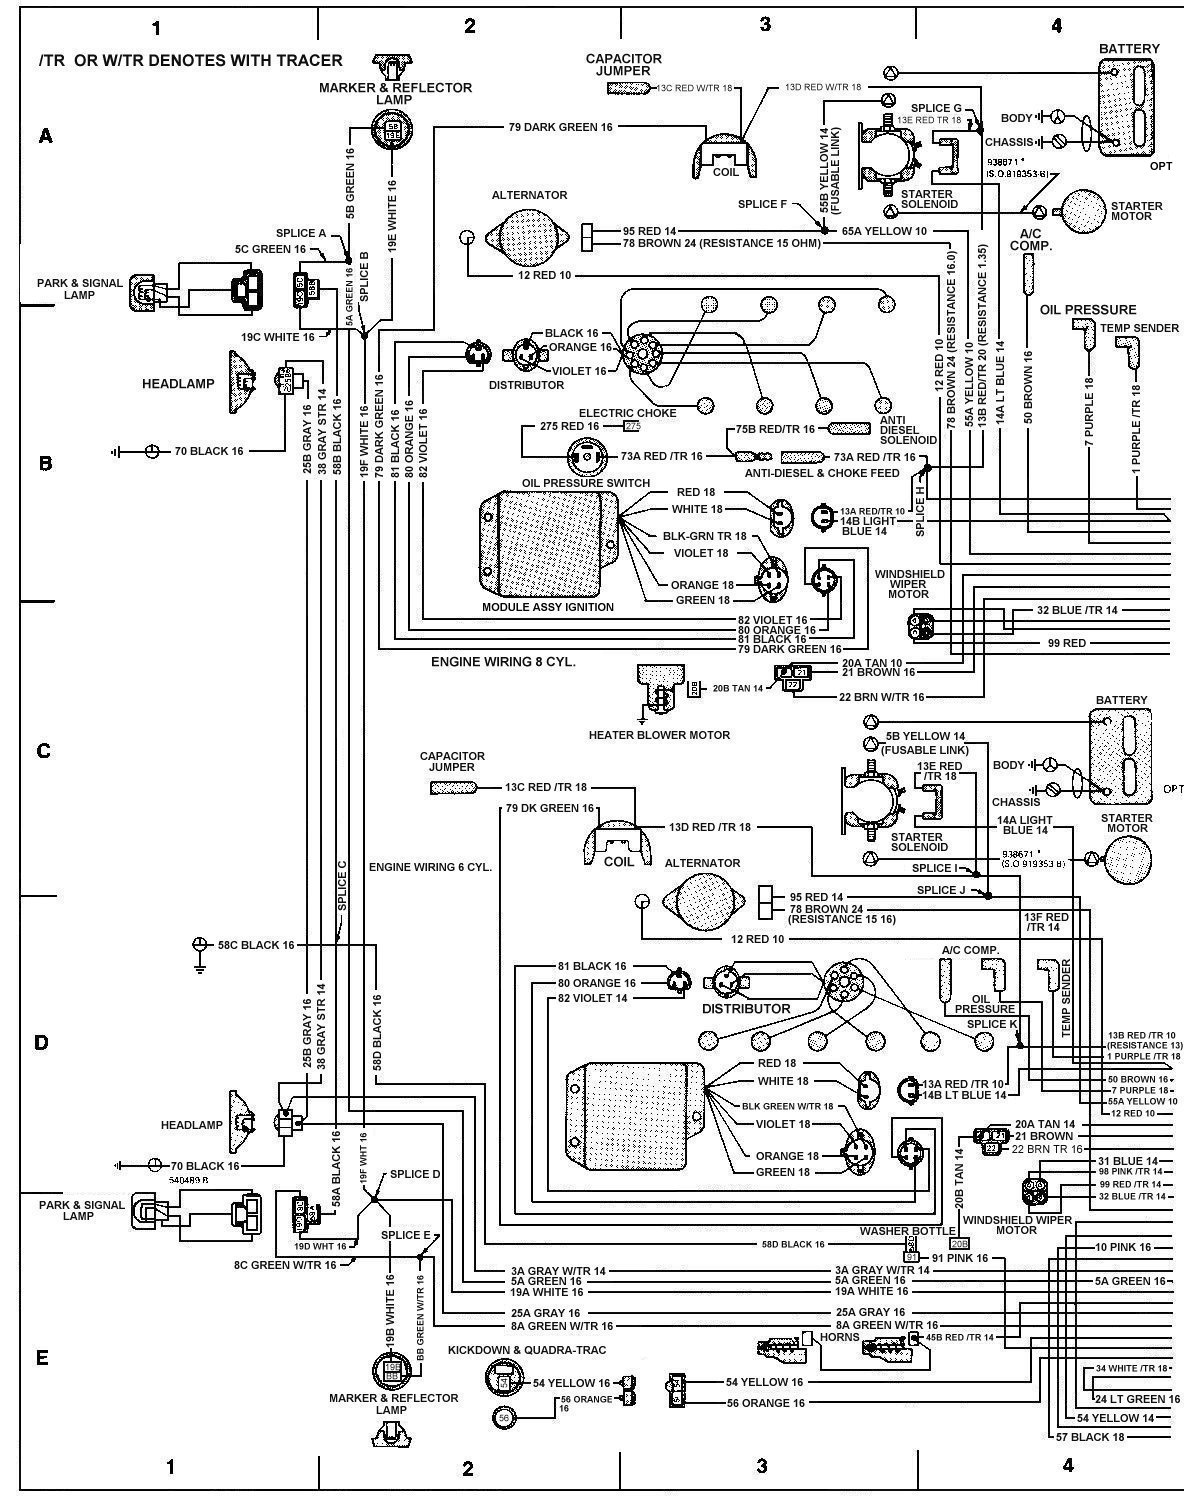 81 Corvette Battery Wiring Diagram Mastering 78 Chevy Radio Imageresizertool Com 1980 Horn Assembly